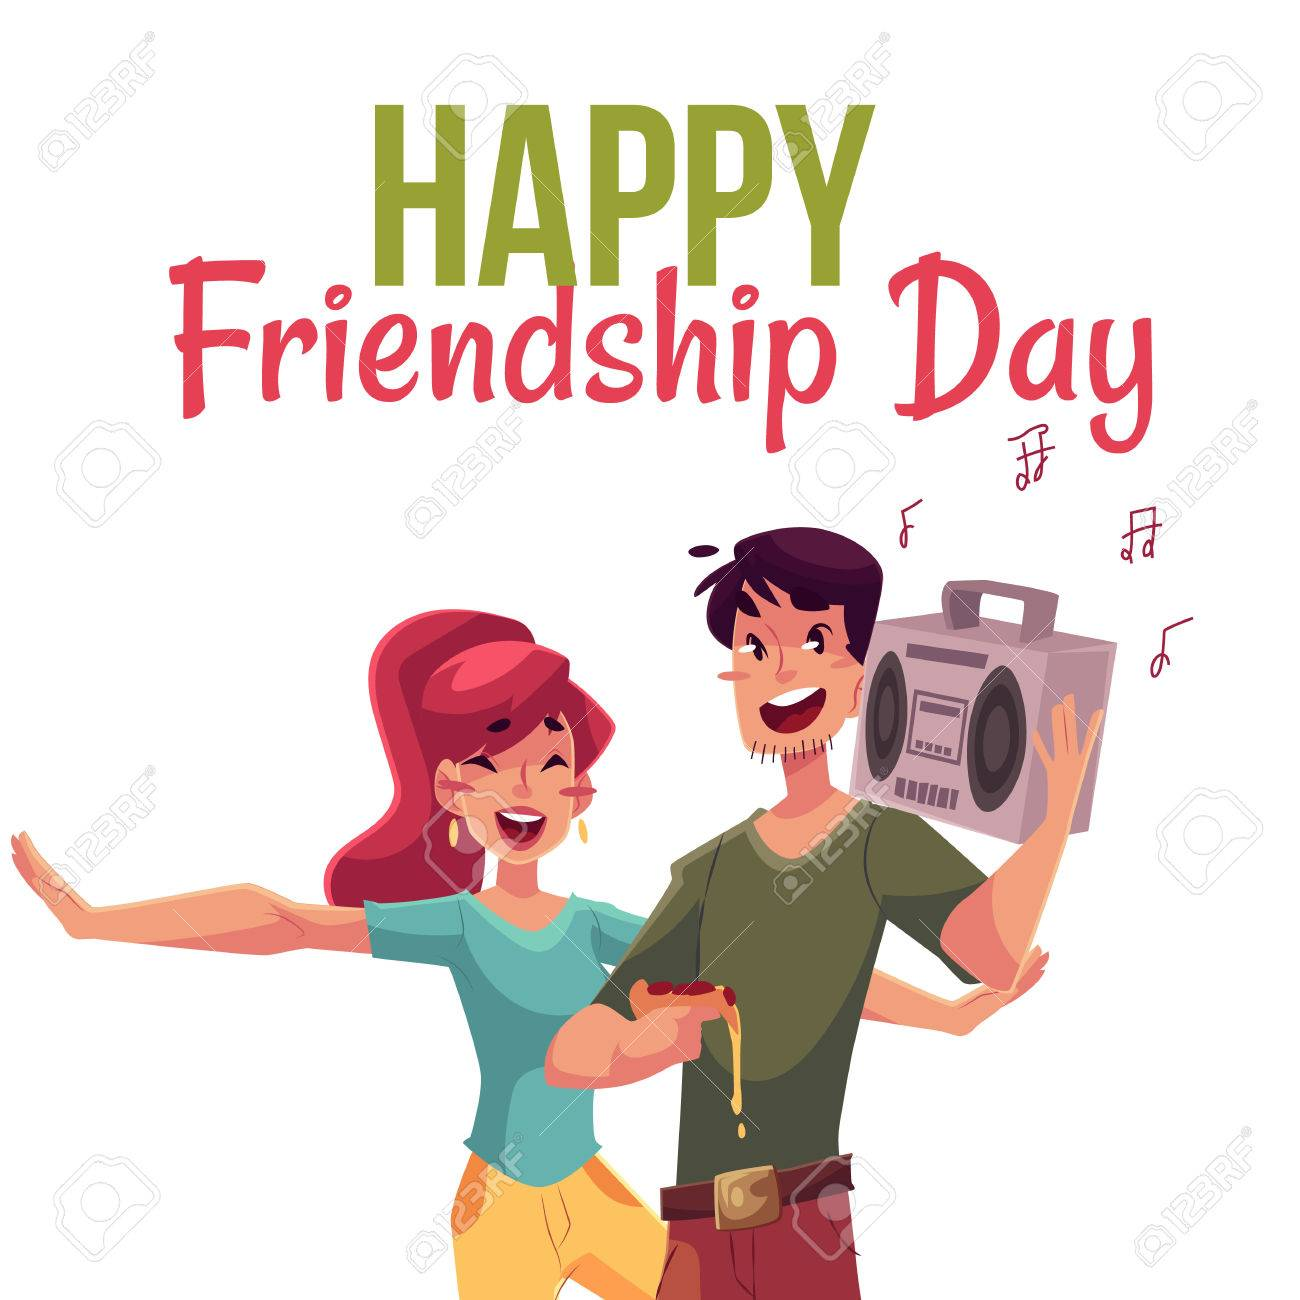 Attractive Happy Friendship Day Greeting Card Design With Friends Having Fun At A  Party, Cartoon Vector